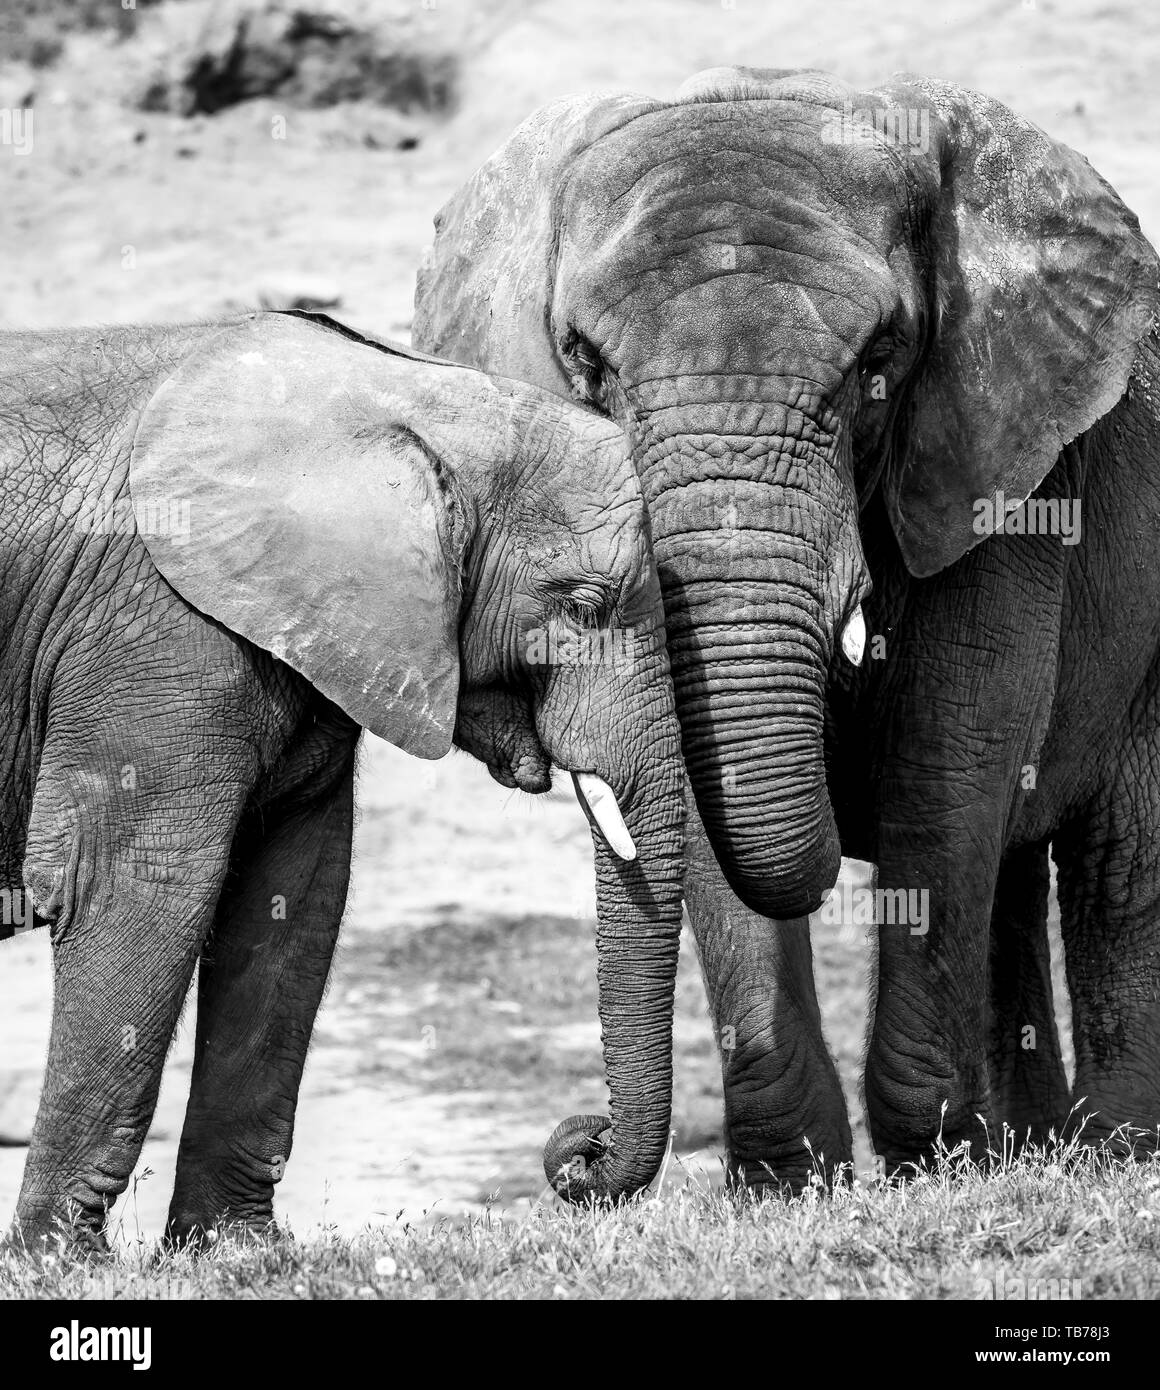 Black & white close-up photograph showing strong affection, bond, love between African elephant calf & his mother (Loxodonta) together outside in sun. Stock Photo